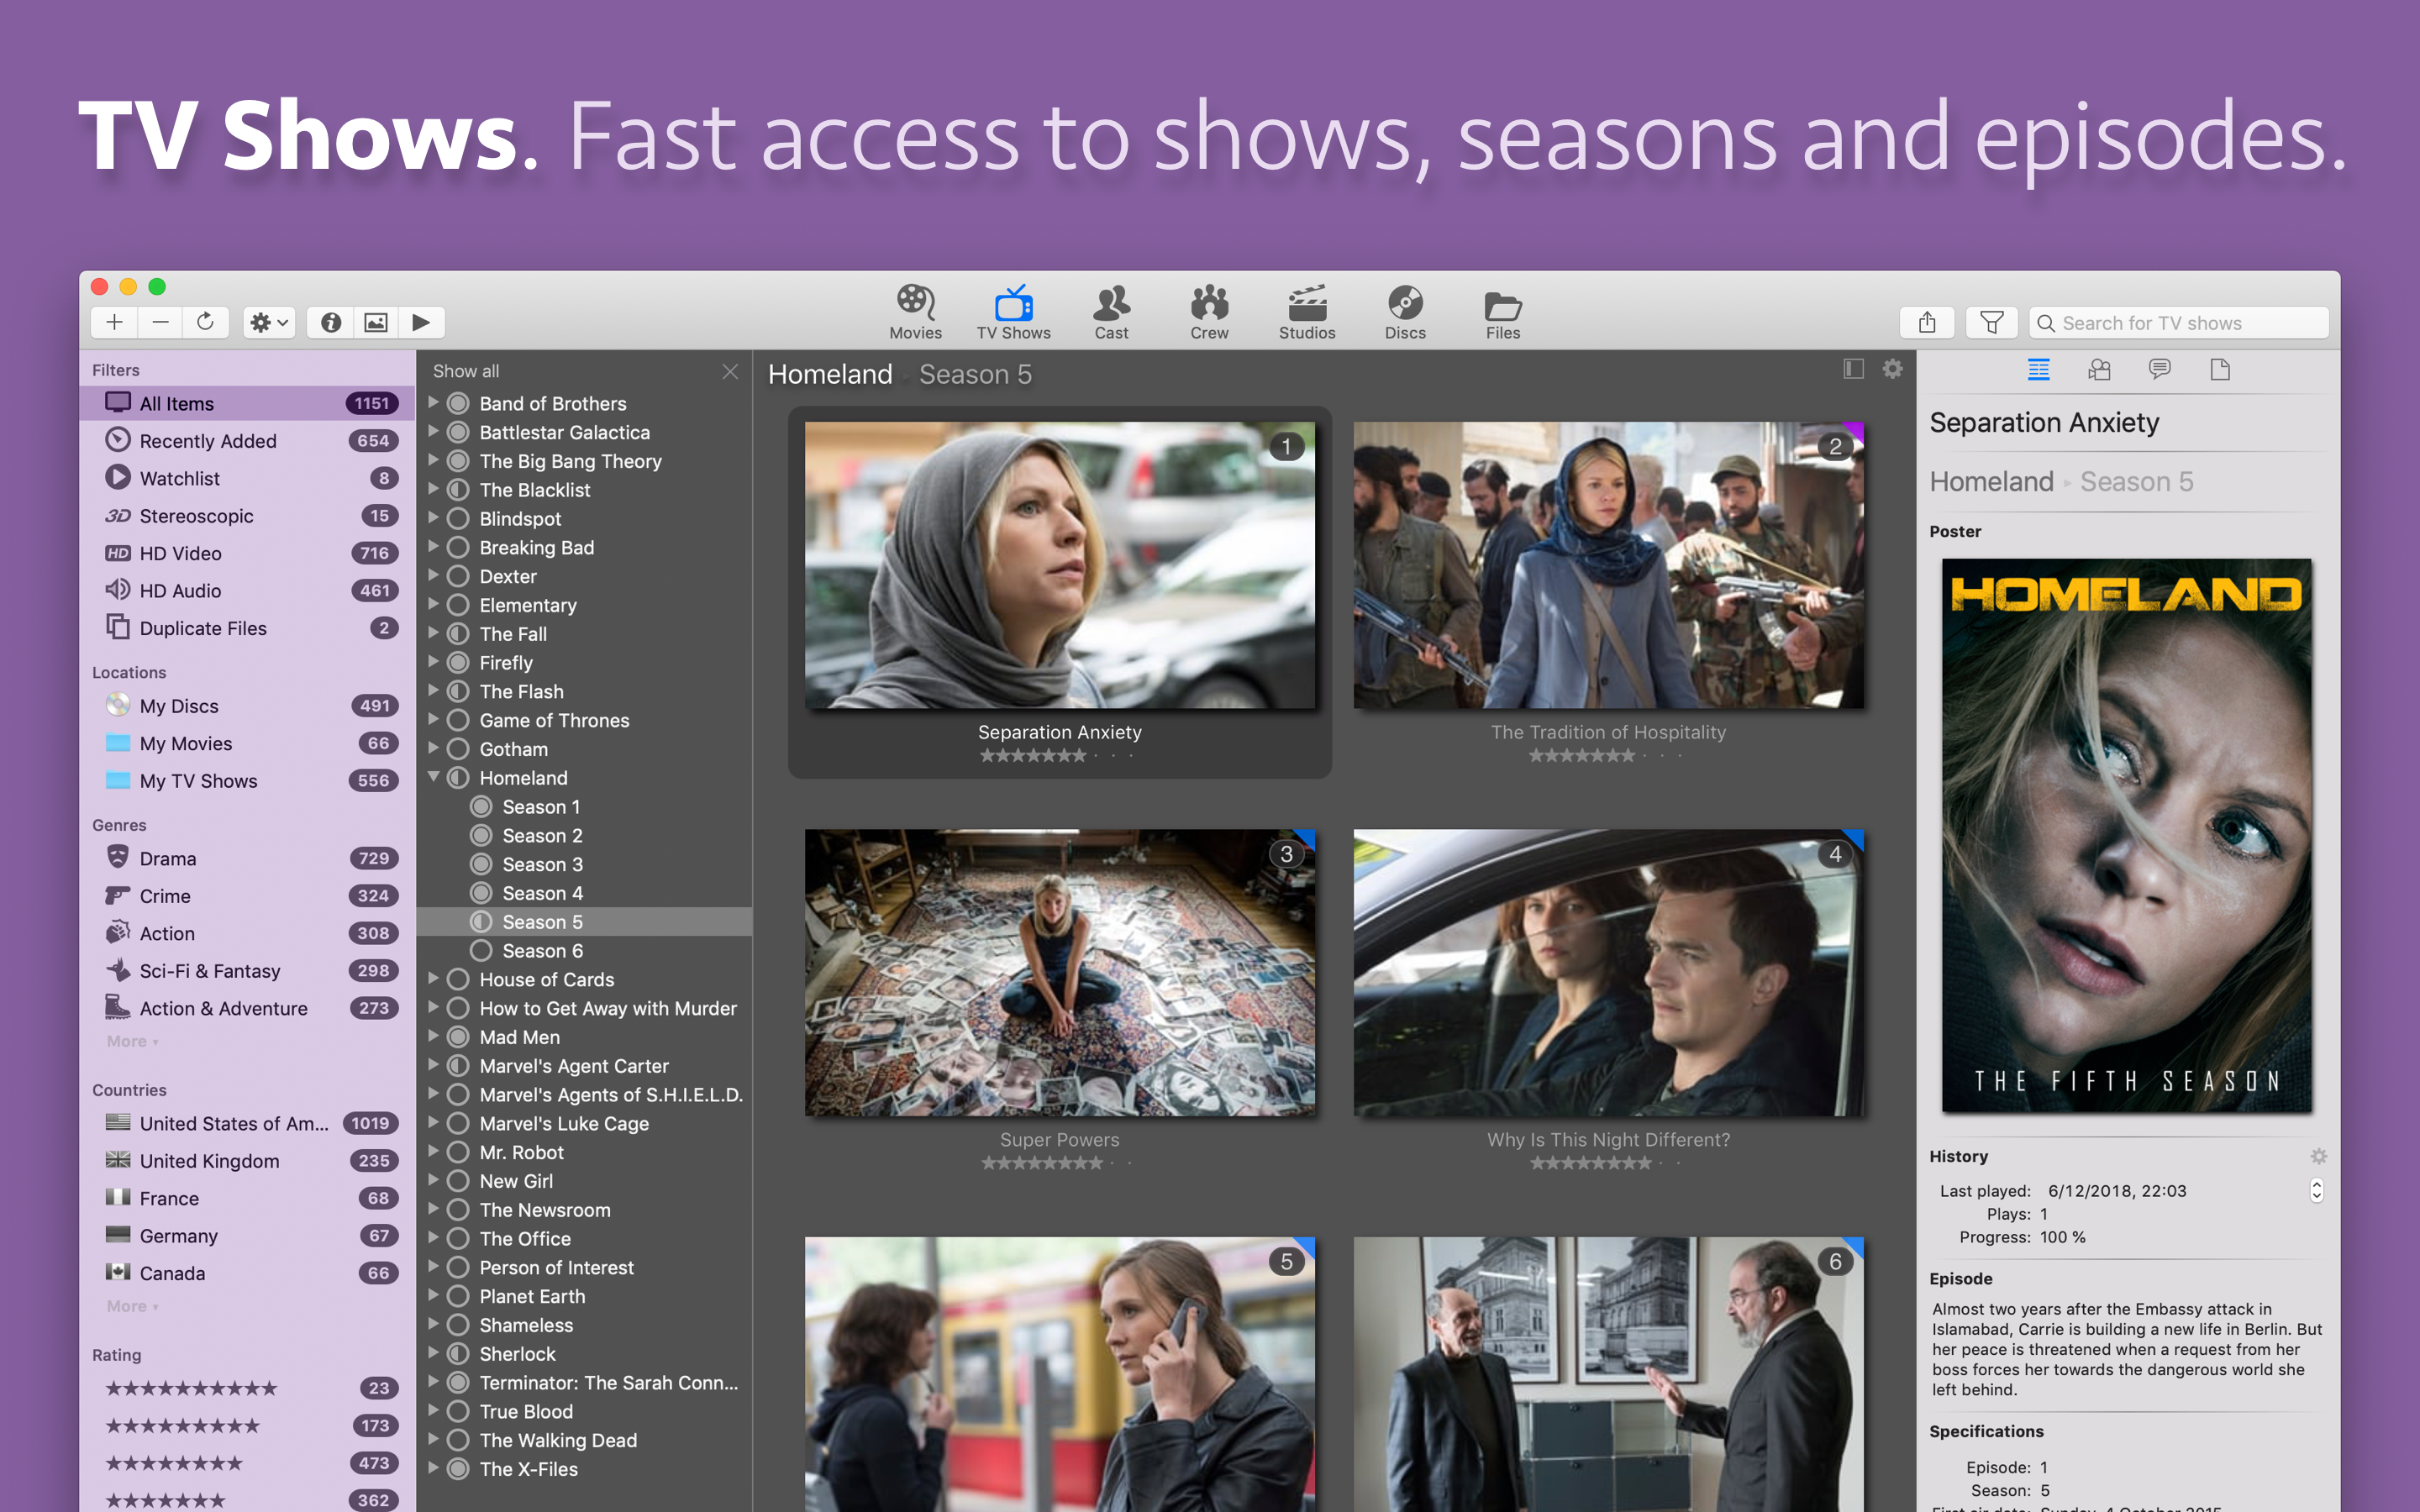 Get fast access to TV shows